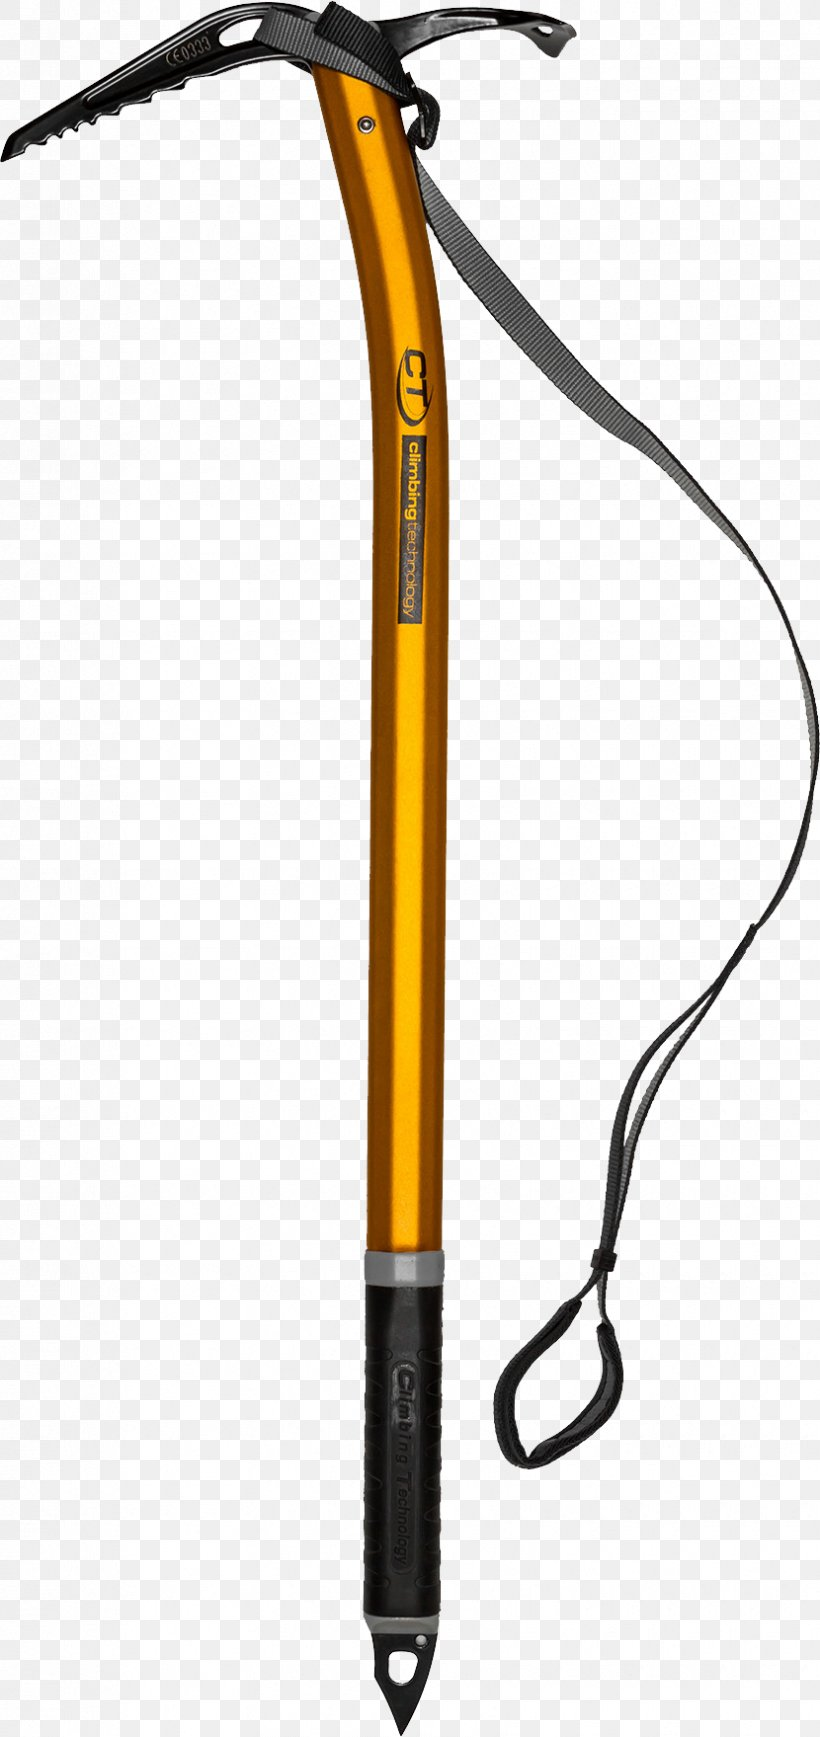 Ice Axe Ice Tool, PNG, 830x1759px, Ice Axe, Bicycle Frame, Bicycle Part, Climbing, Hardware Download Free